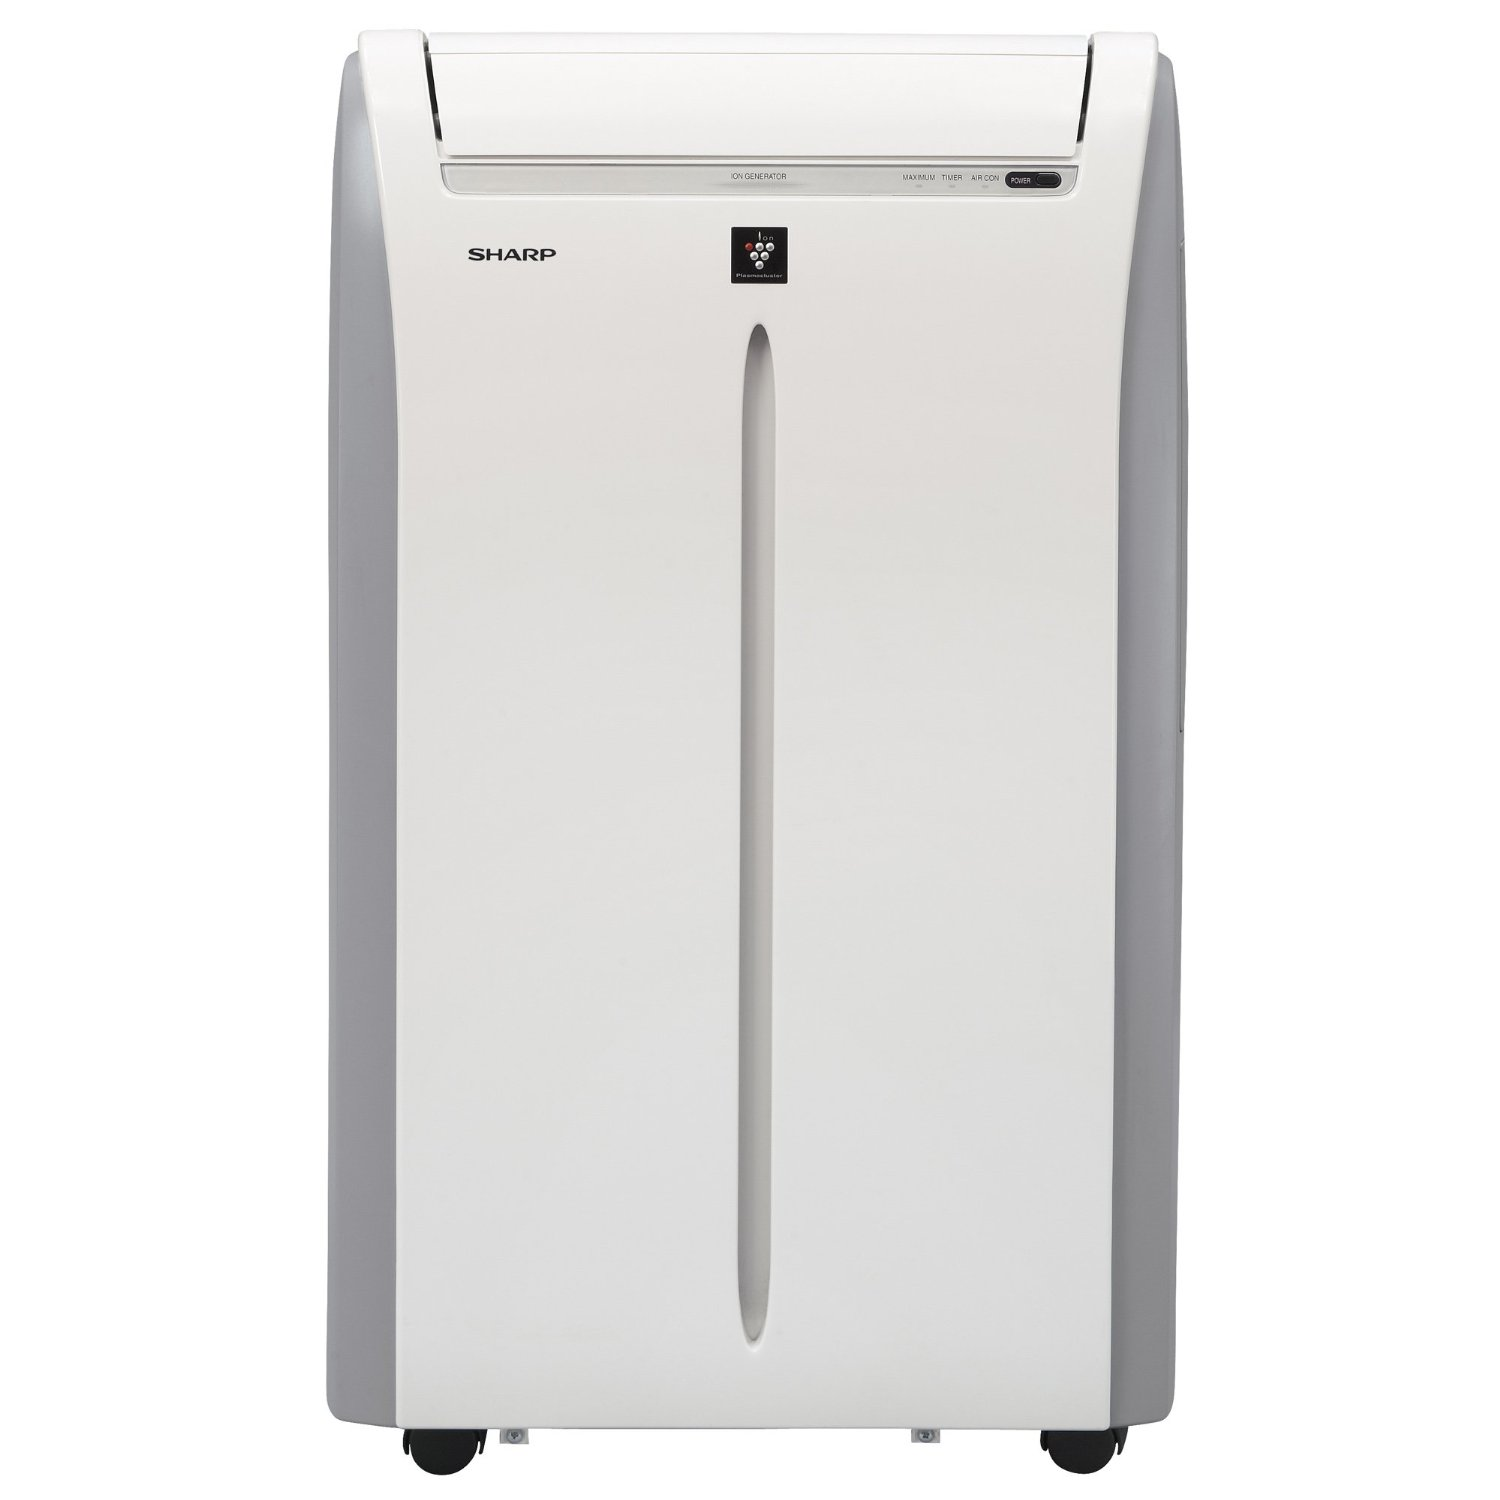 : SHARP Model: CV2P12SX Style: 11 500 BTU Portable Air Conditioner #5C504E